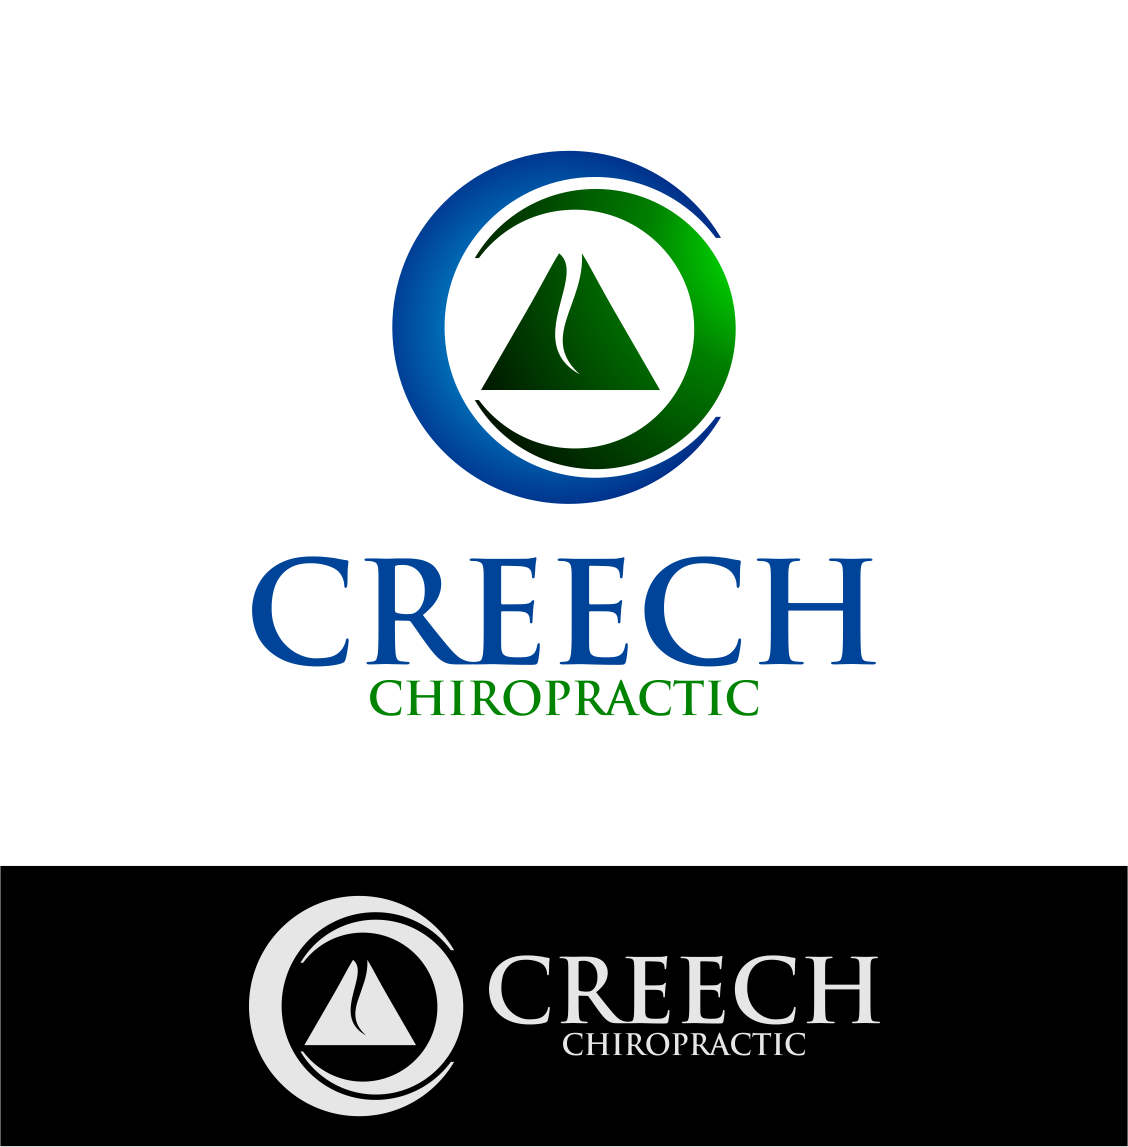 Logo Design by Agus Martoyo - Entry No. 116 in the Logo Design Contest Imaginative Logo Design for Creech Chiropractic.